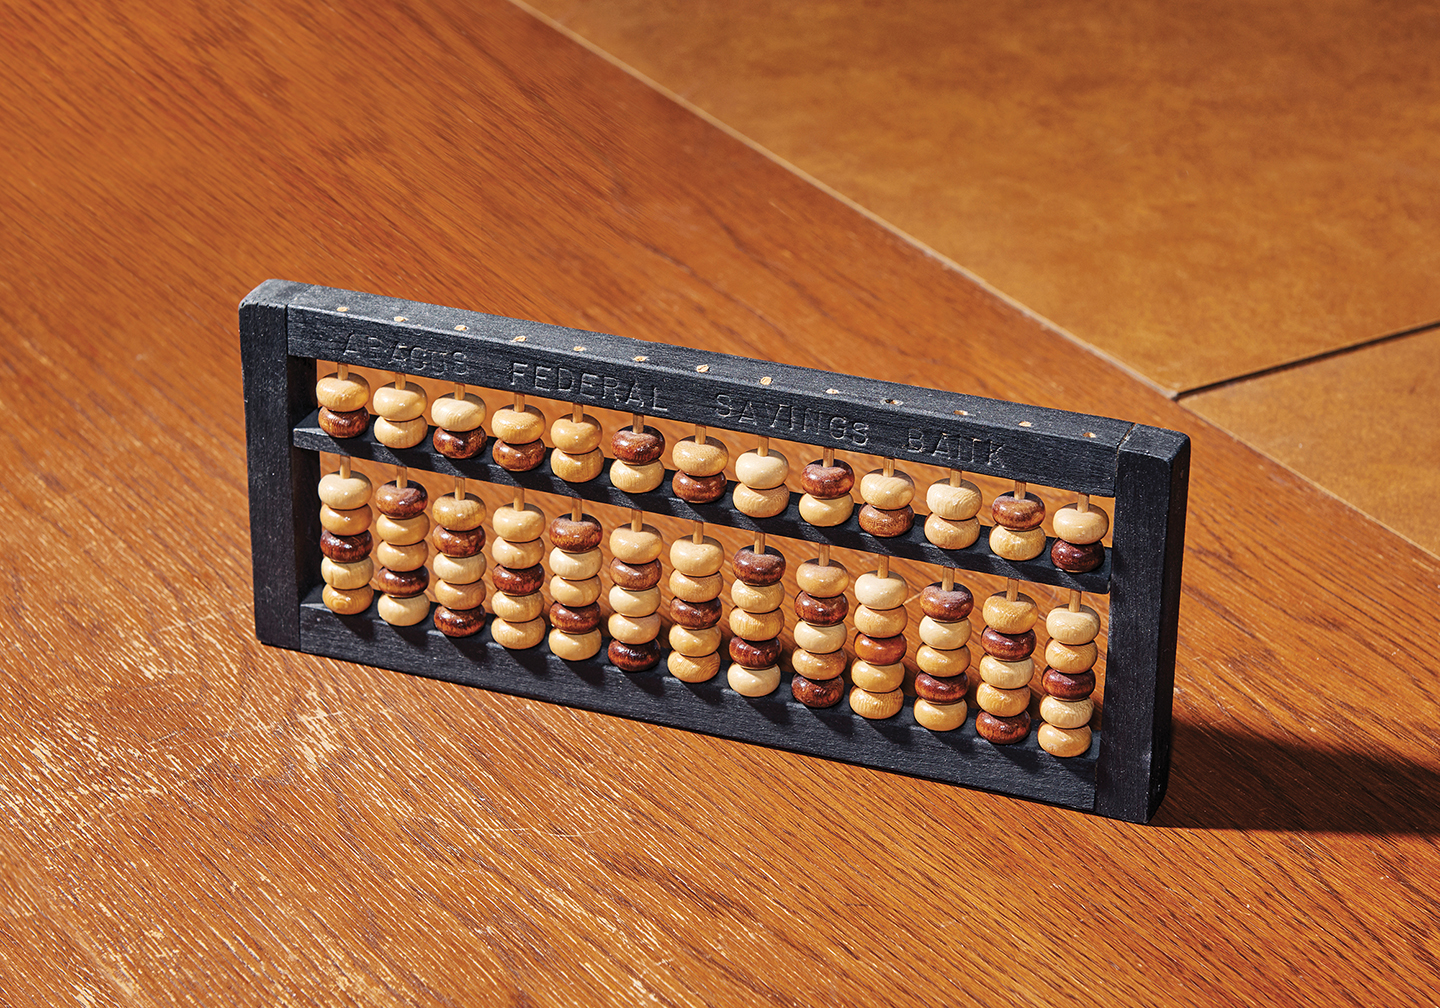 An abacus from the bank's collection.